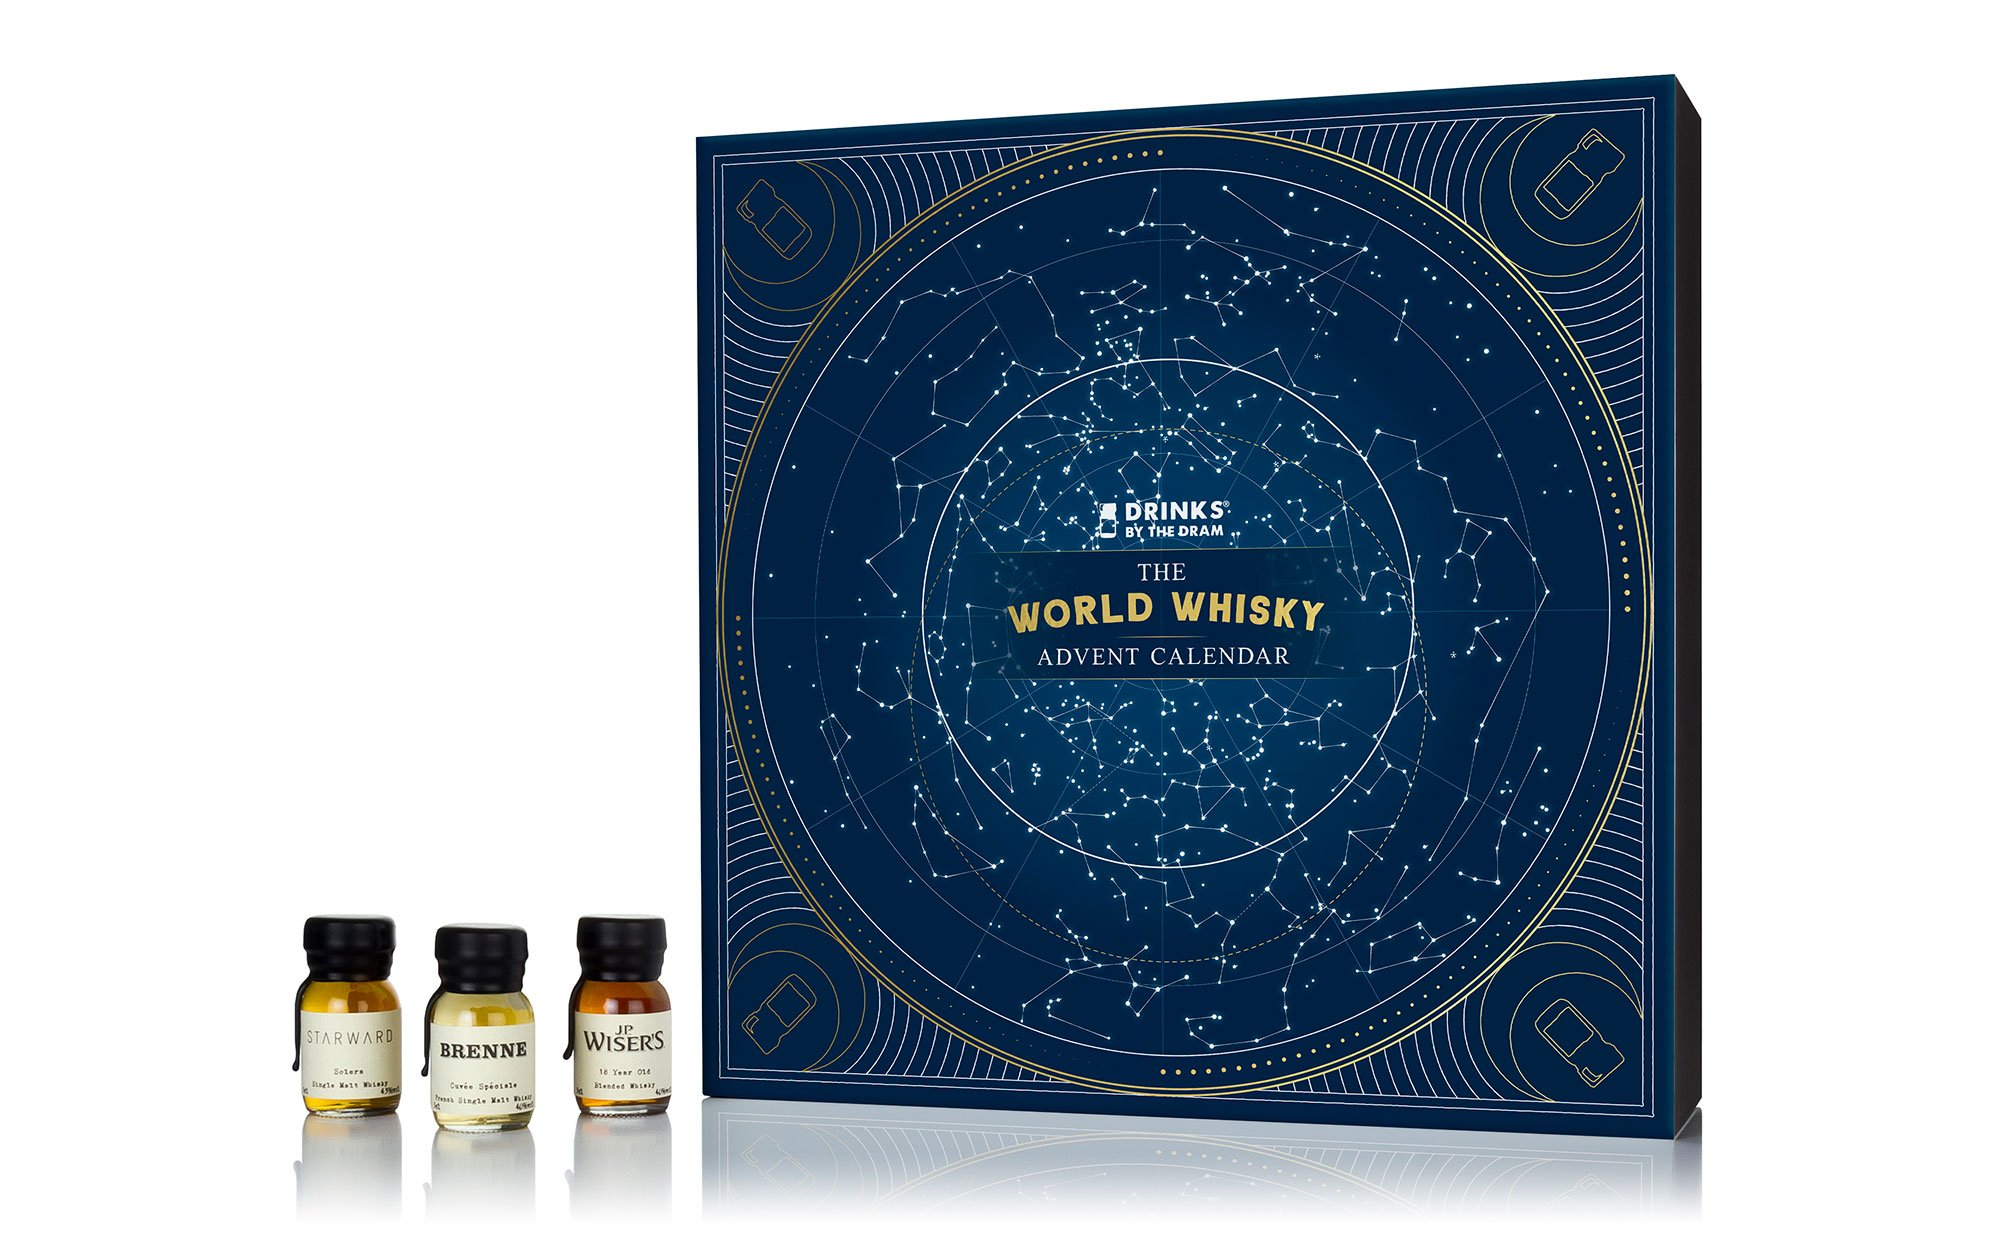 The World Whisky Advent Calendar